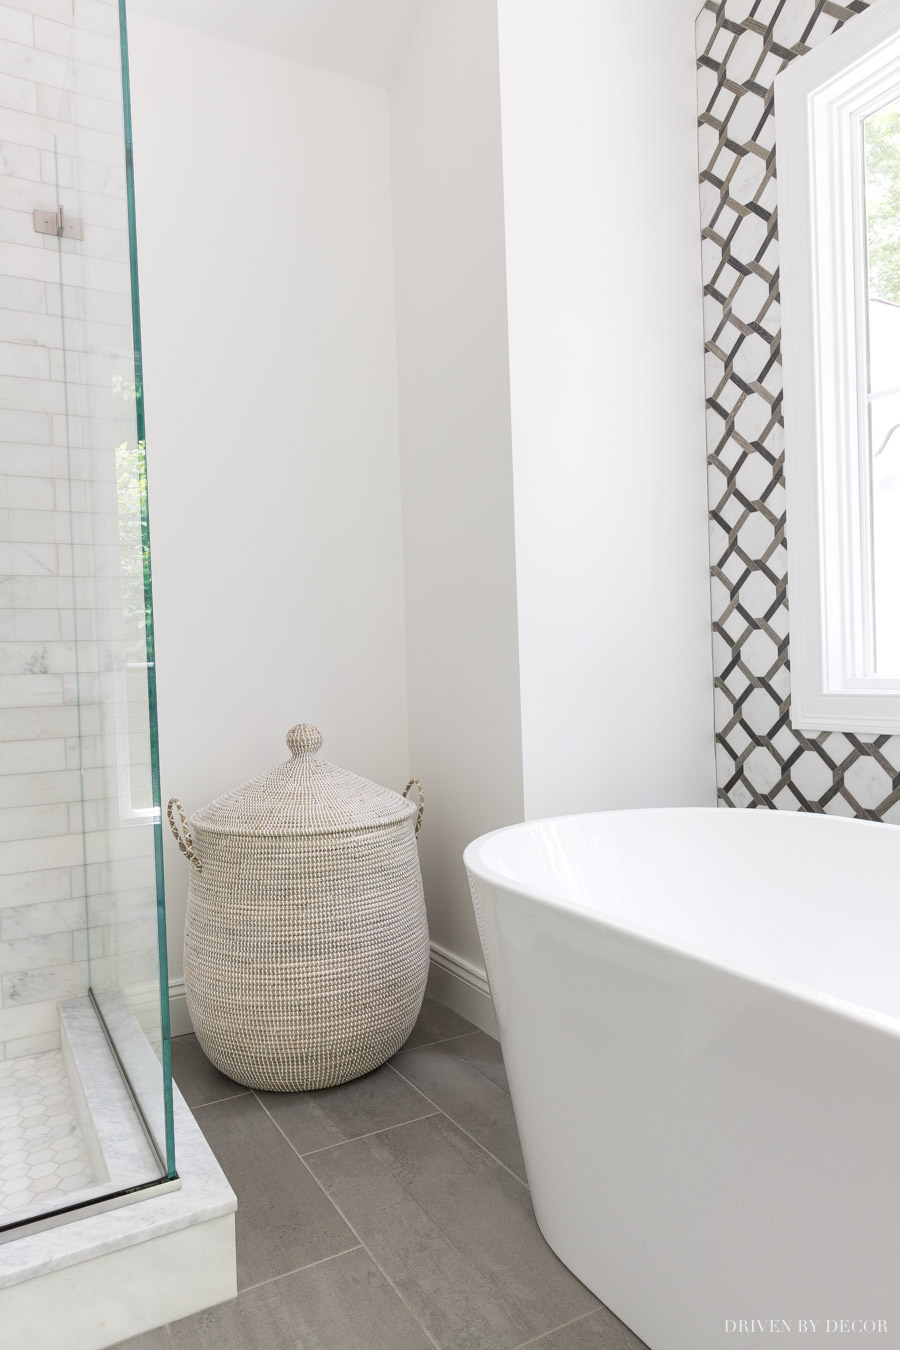 Such a gorgeous lidded hamper in this bathroom!